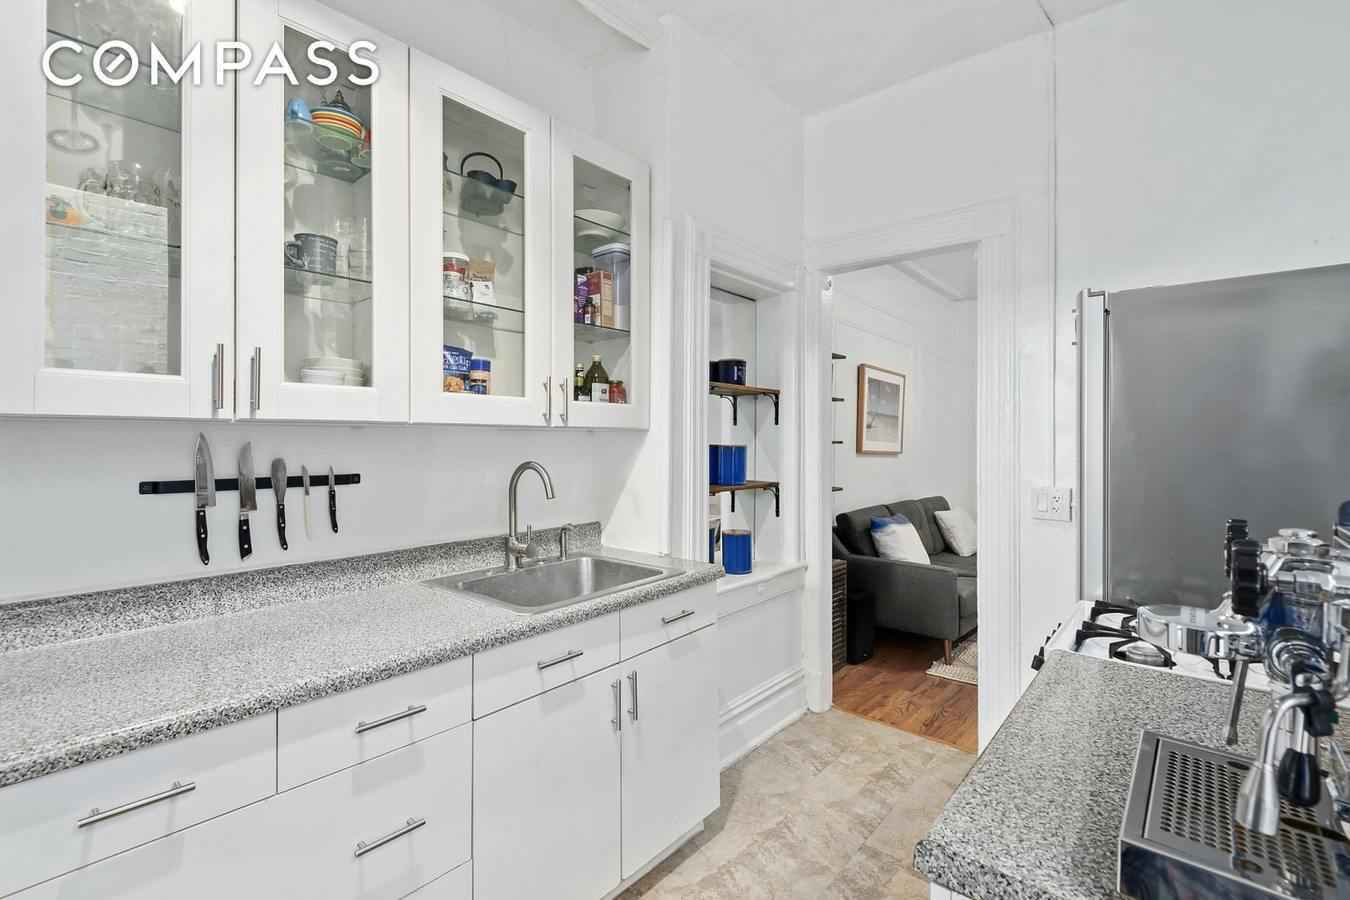 Apartment for sale at 264 West 22nd Street, Apt 20